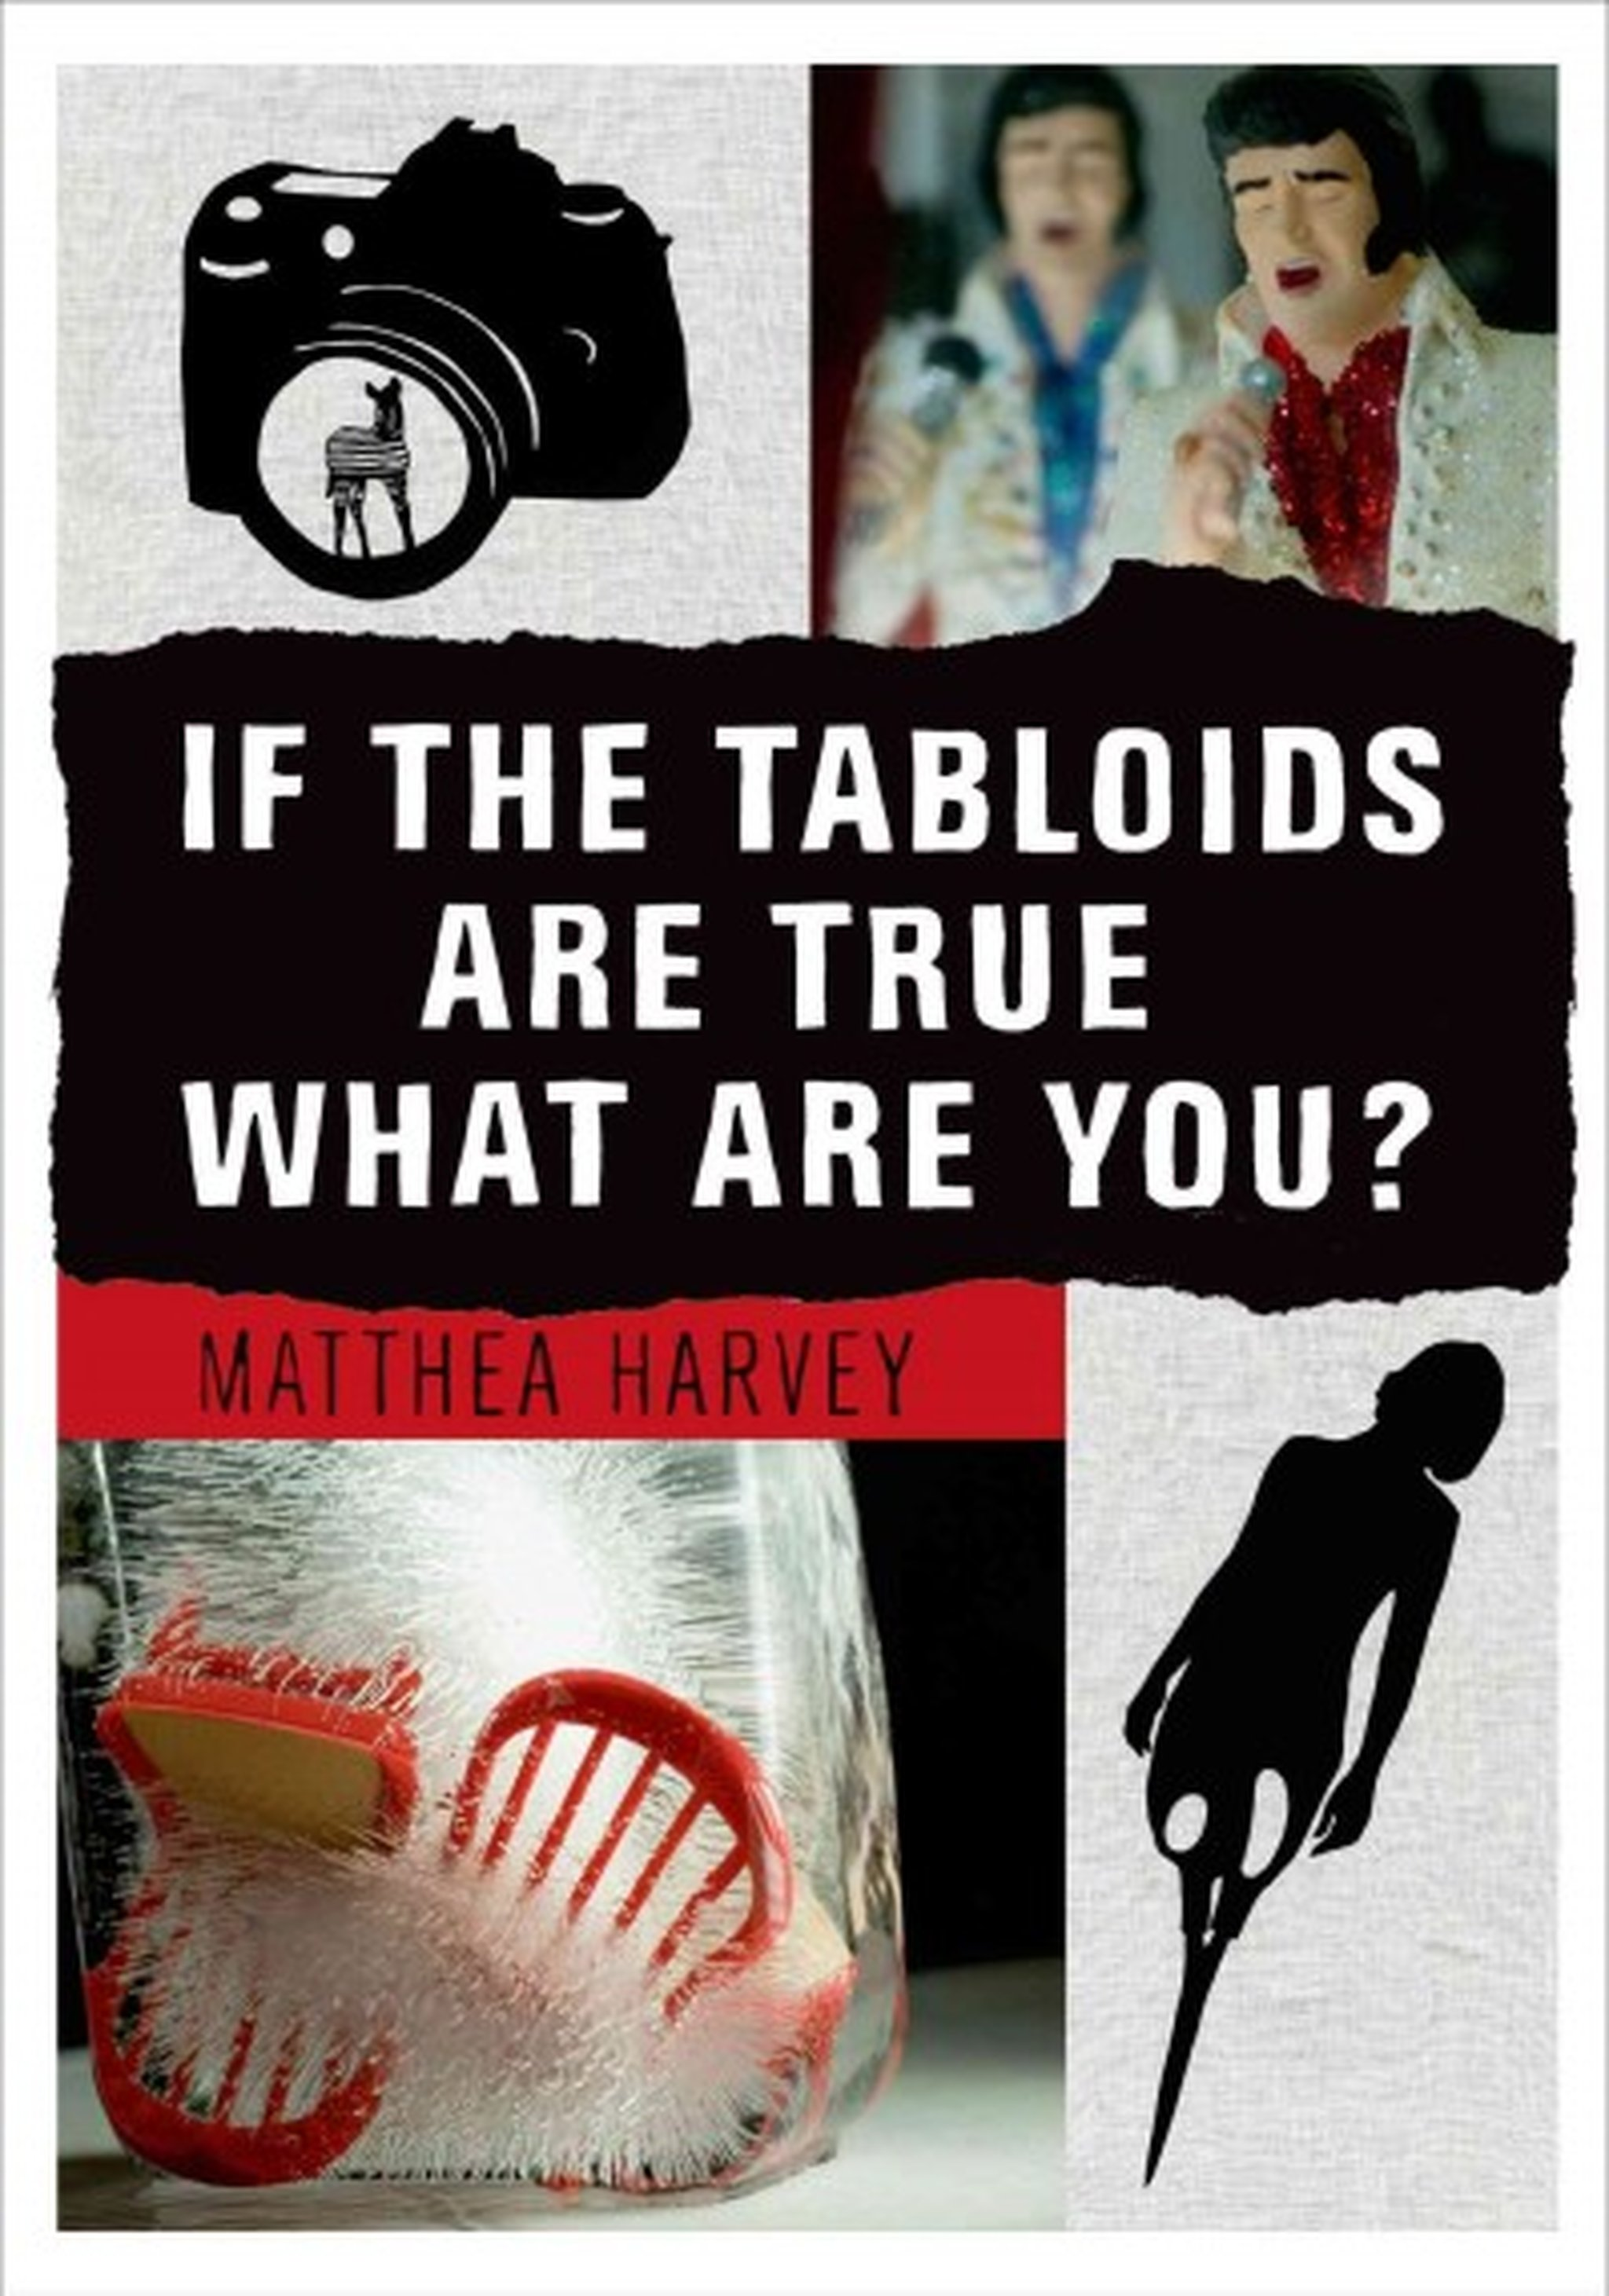 Review: IF THE TABLOIDS ARE TRUE WHAT ARE YOU? by Matthea Harvey